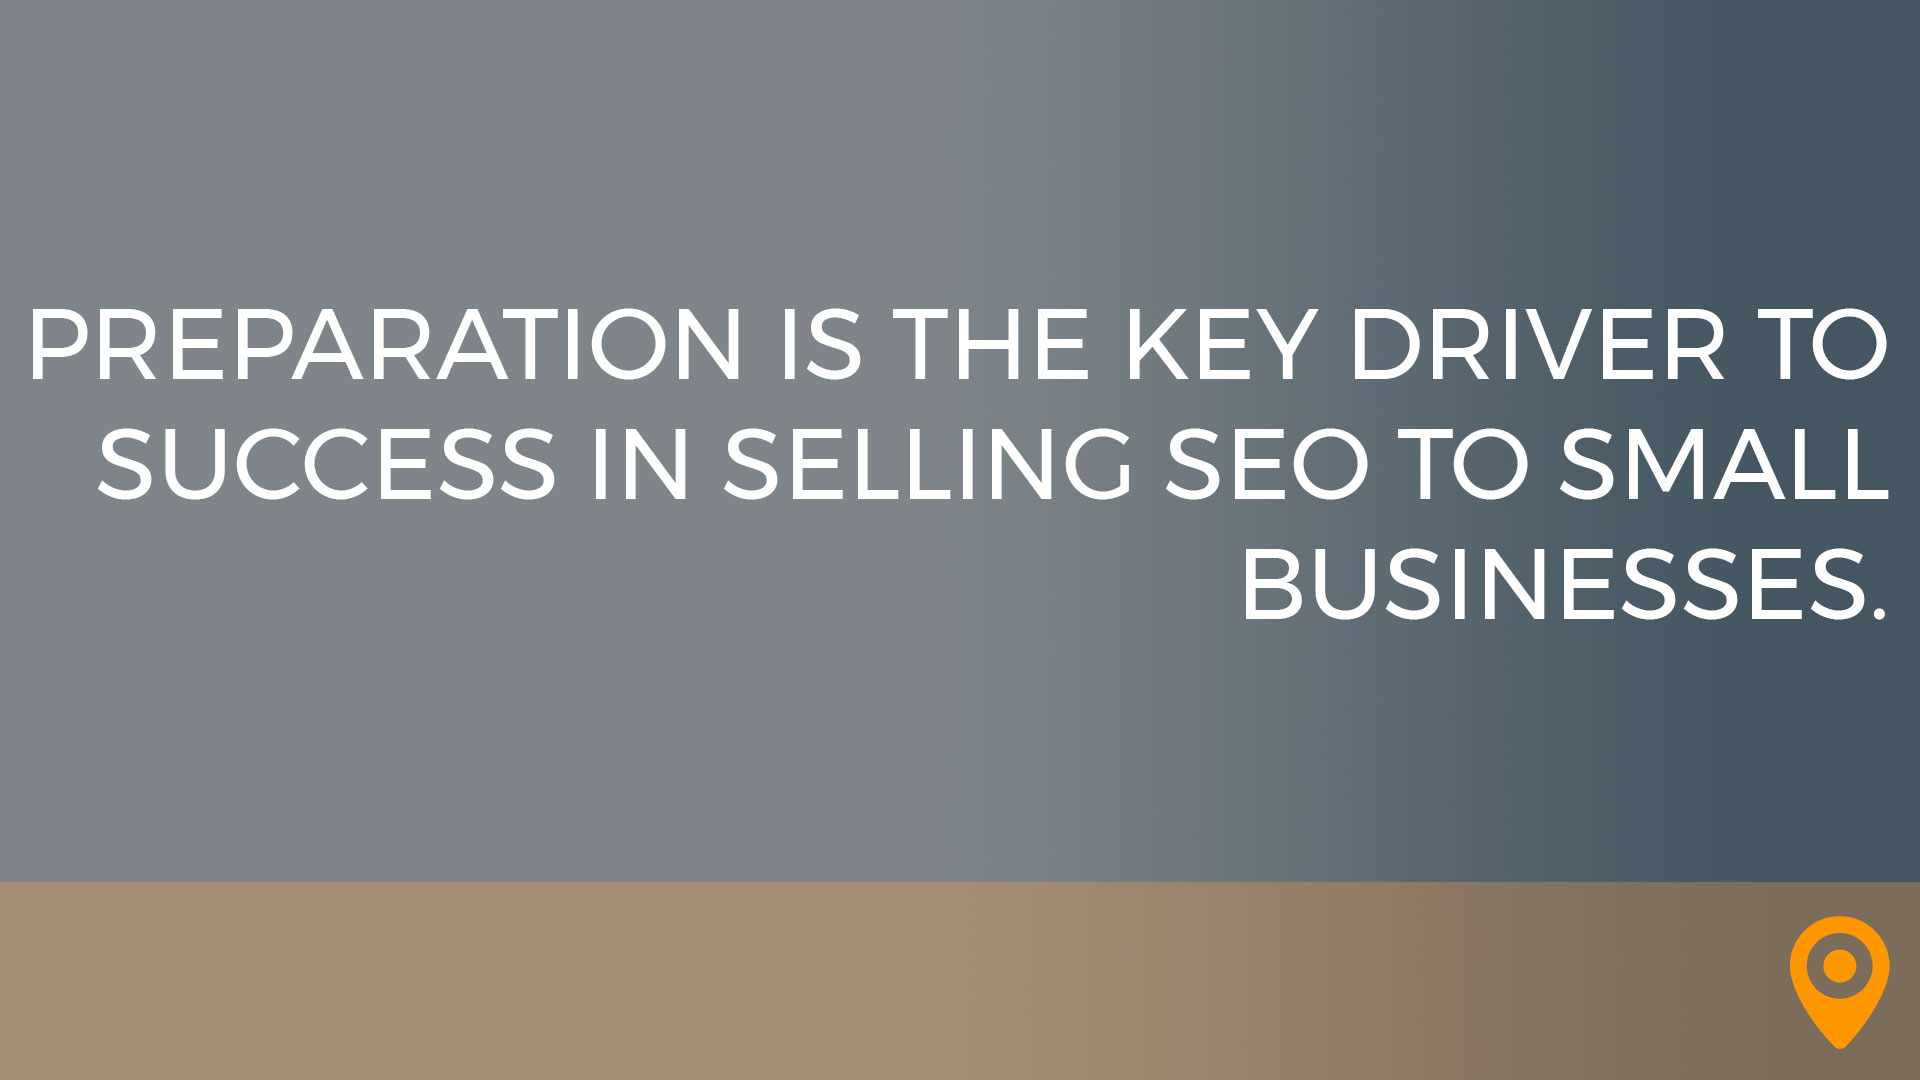 Preparation is the key driver to success in selling SEO to small businesses.